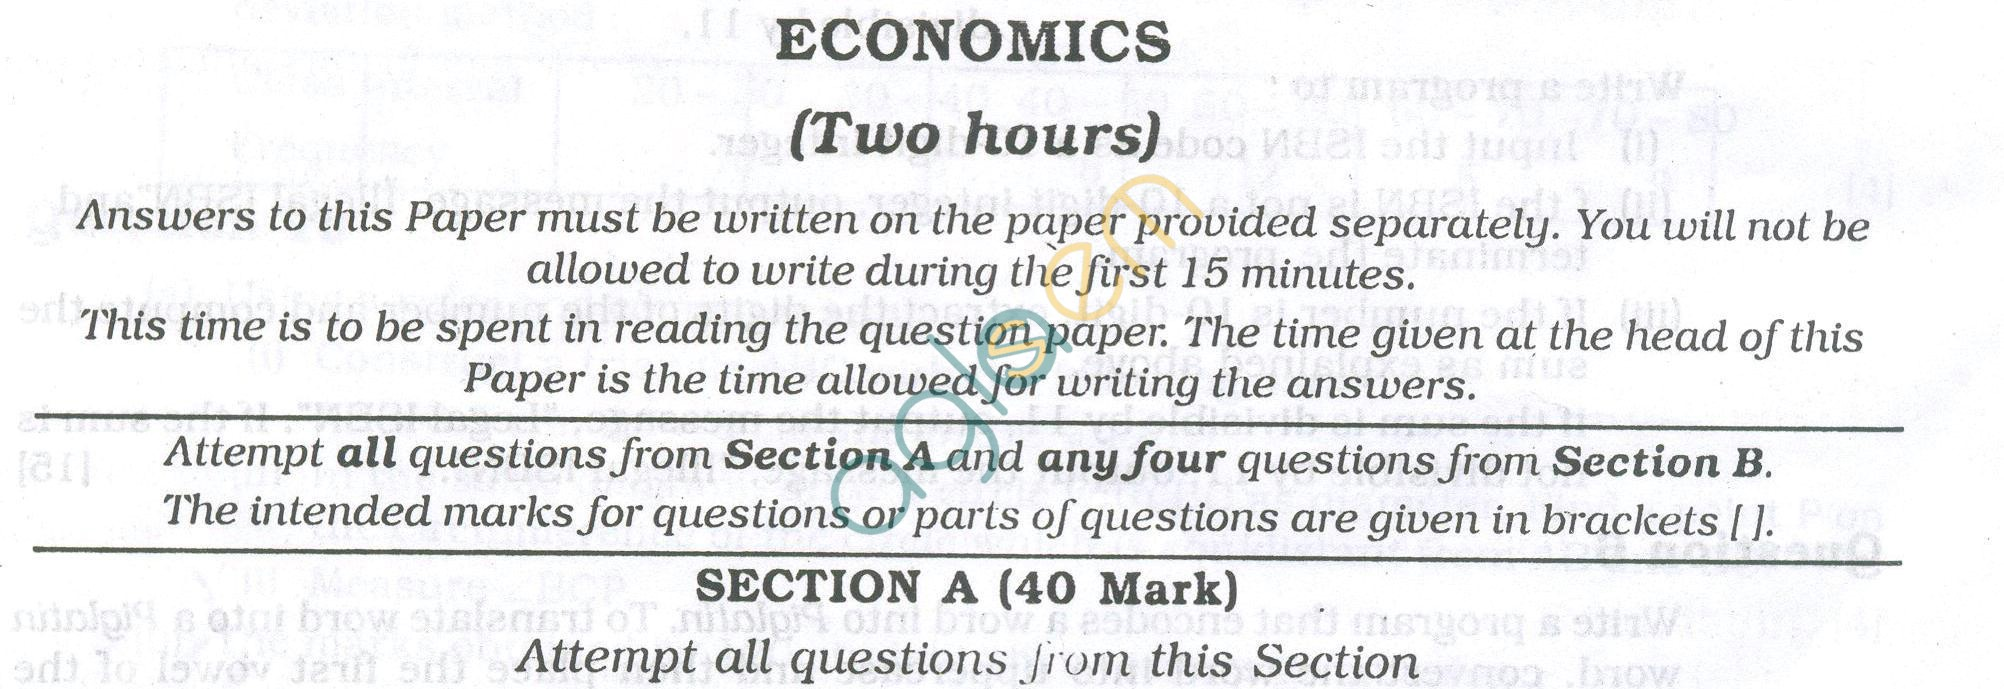 ICSE Question Papers 2013 for Class 10 - Economics